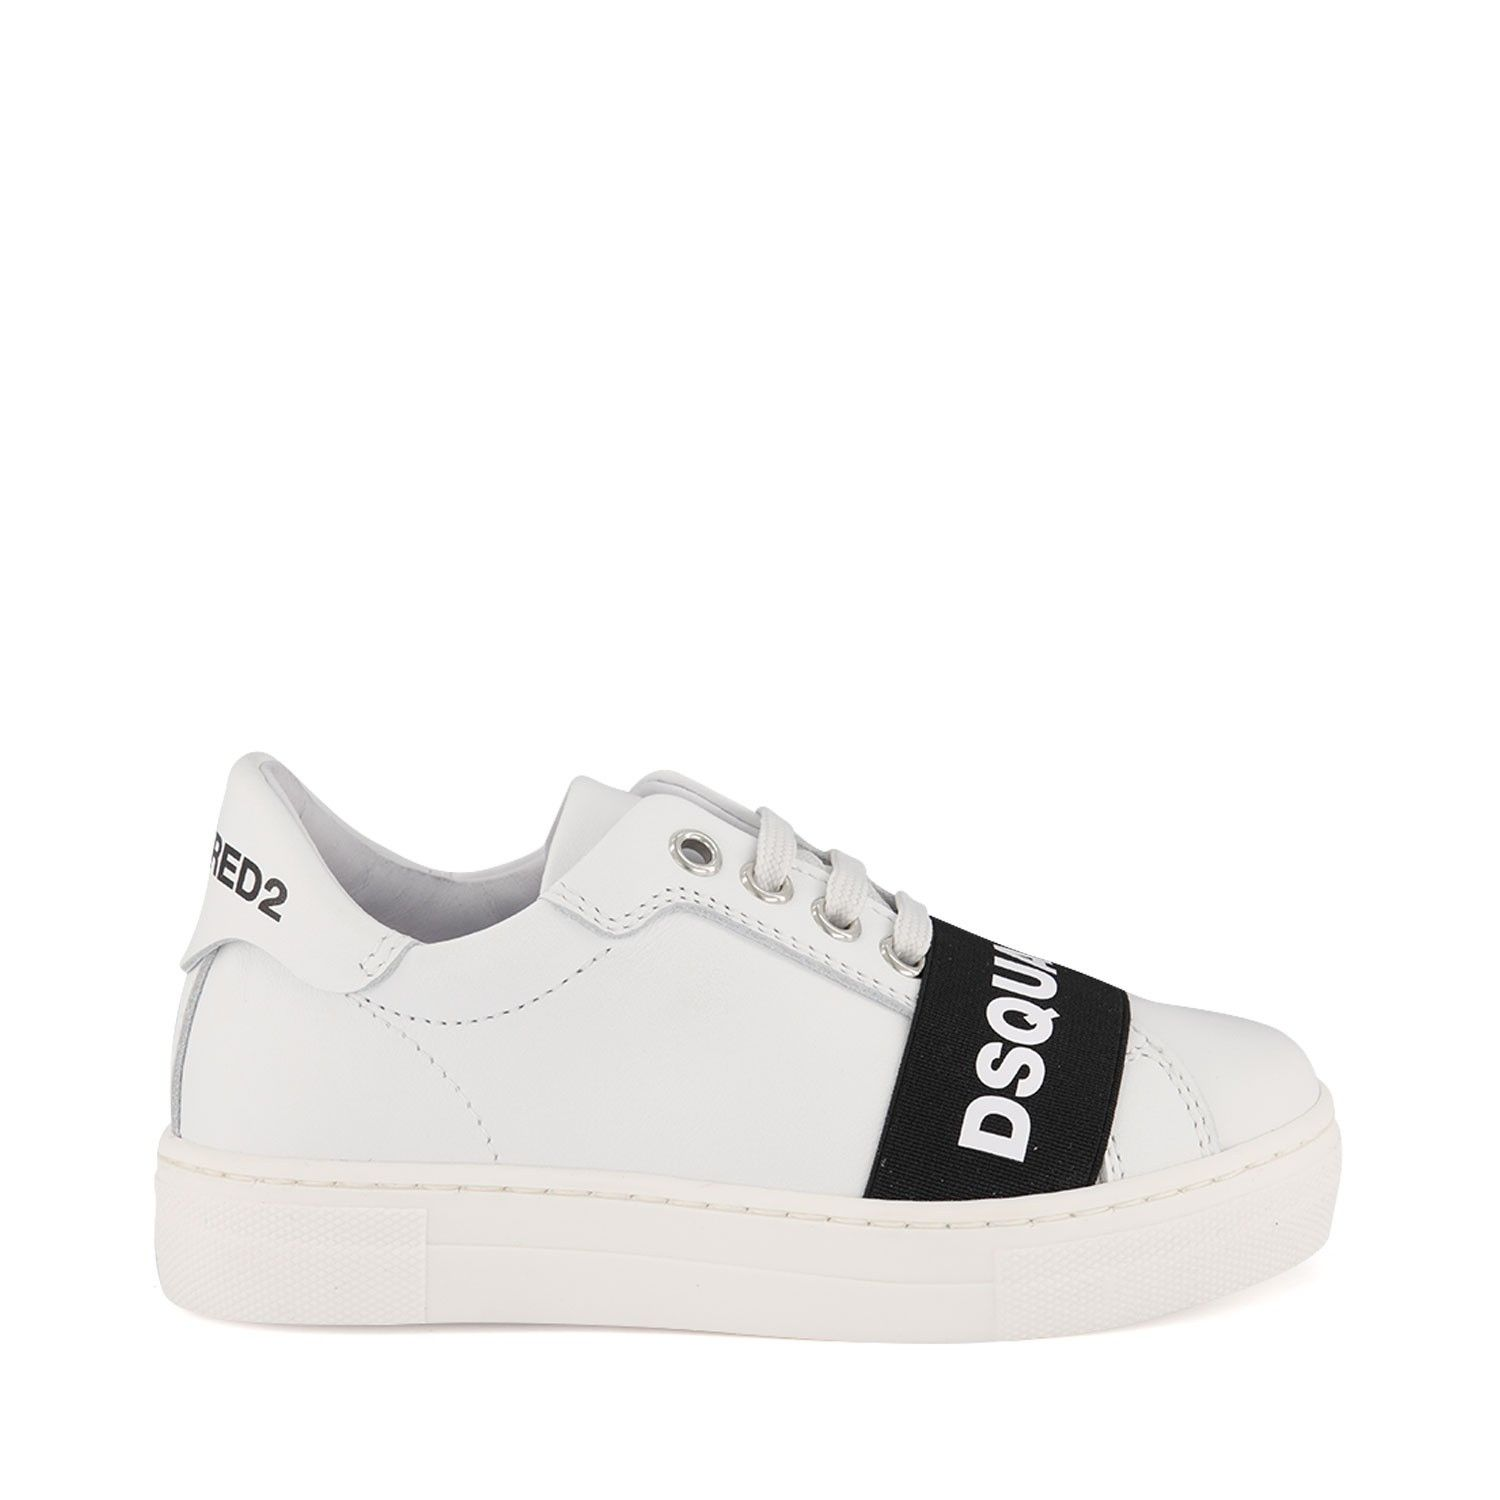 Dsquared2 63524A Unisex White at Coccinelle